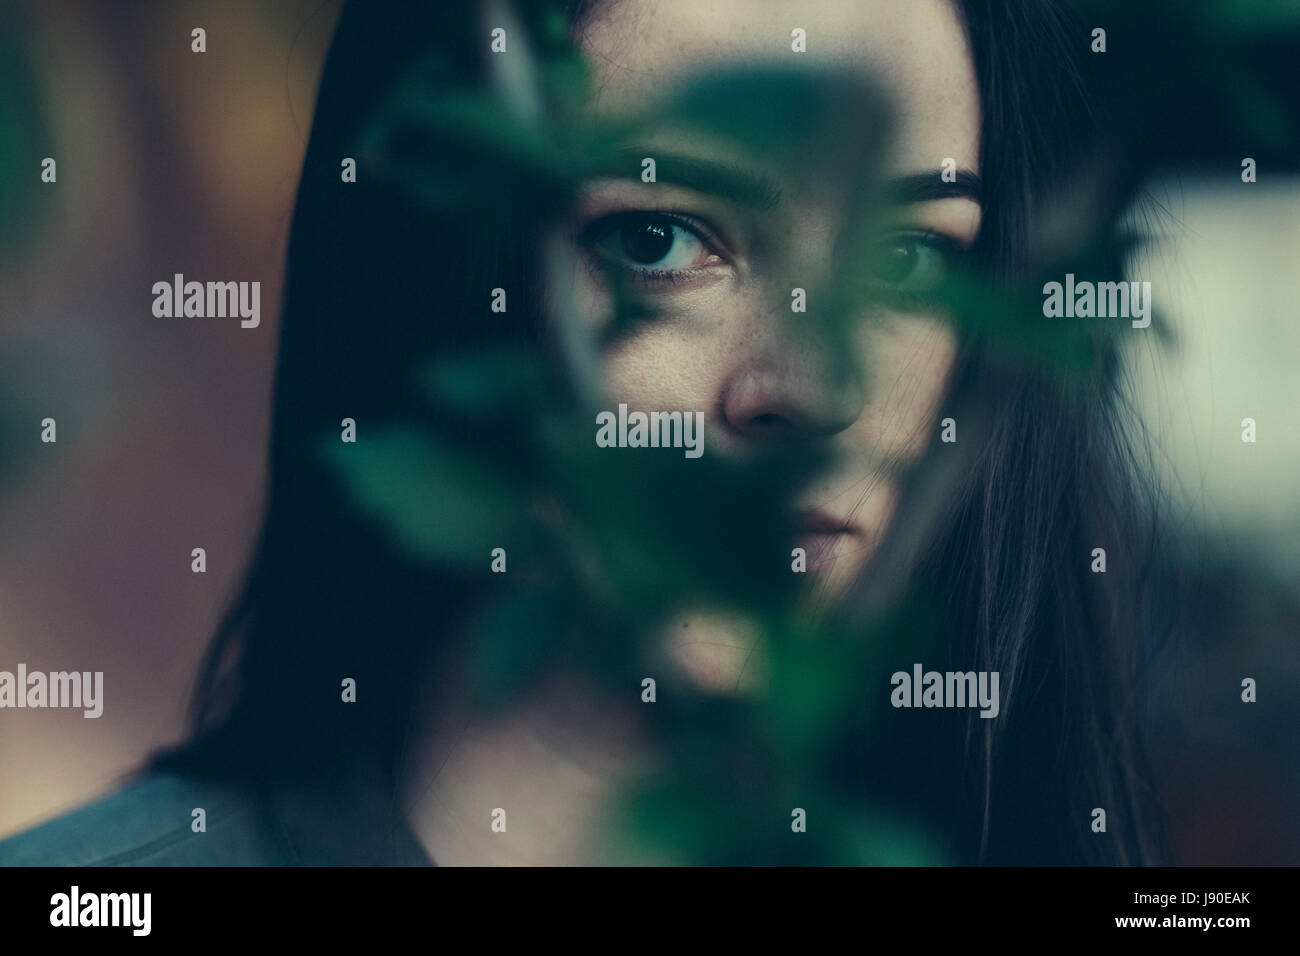 Creative artistic photo of woman - Stock Image